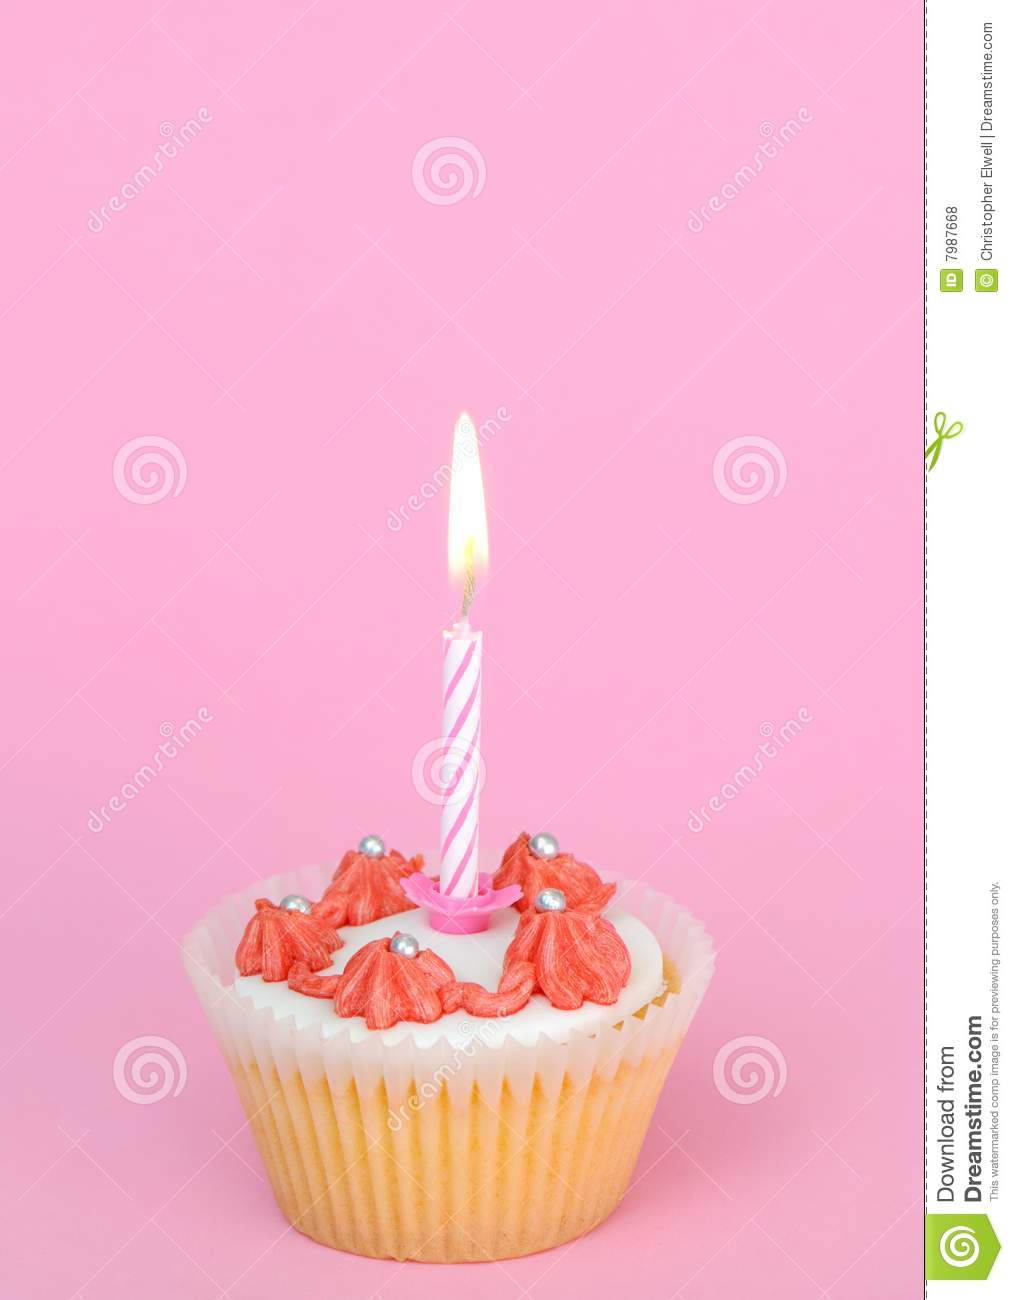 1st Birthday Cake Stock Photo Image Of Cupcake